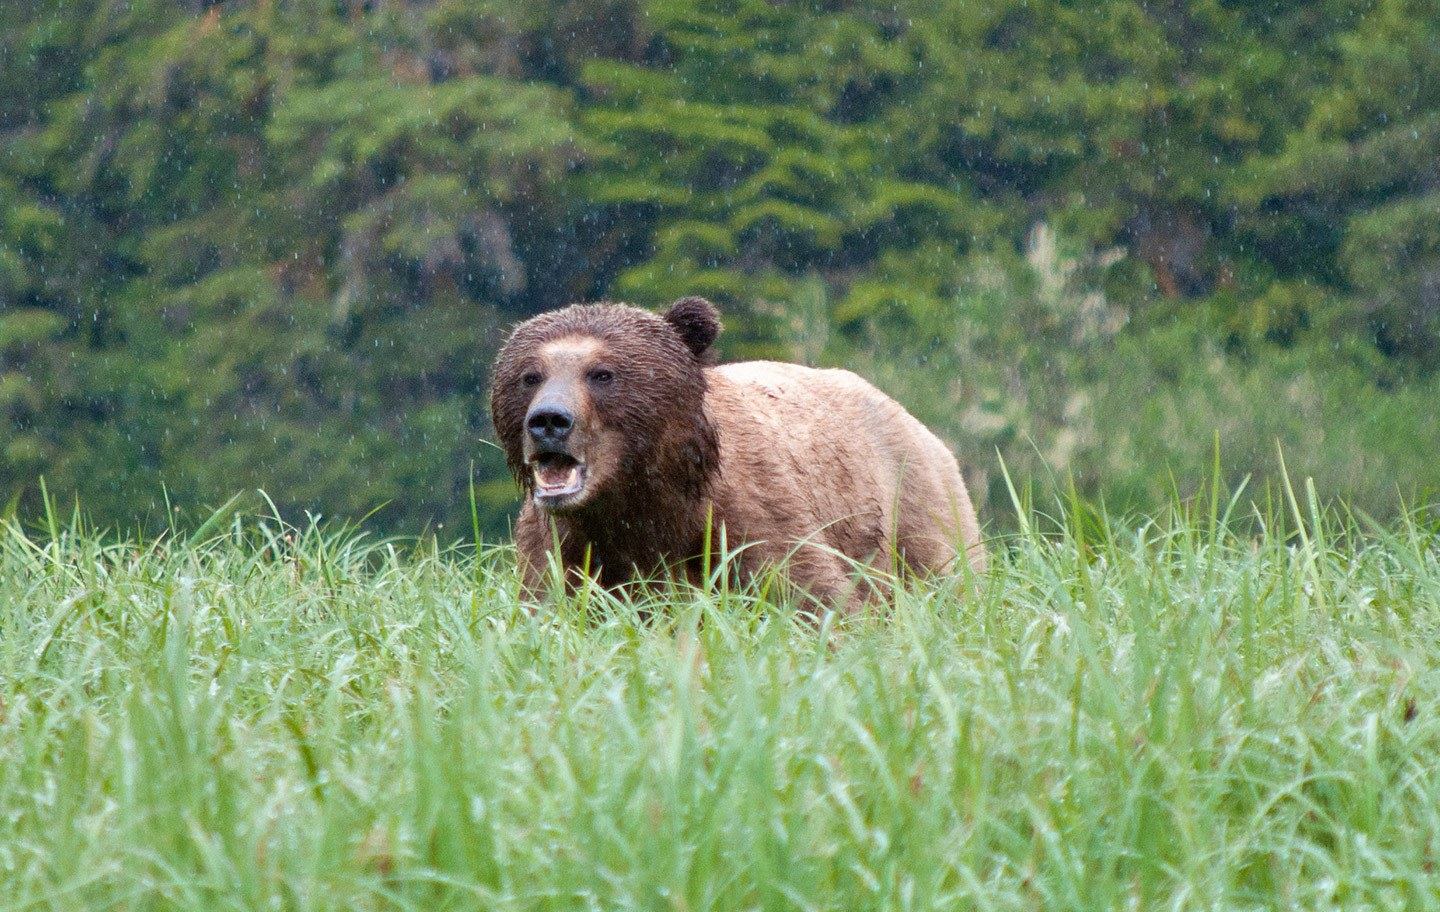 Bear in Great Bear Rainforest Canada